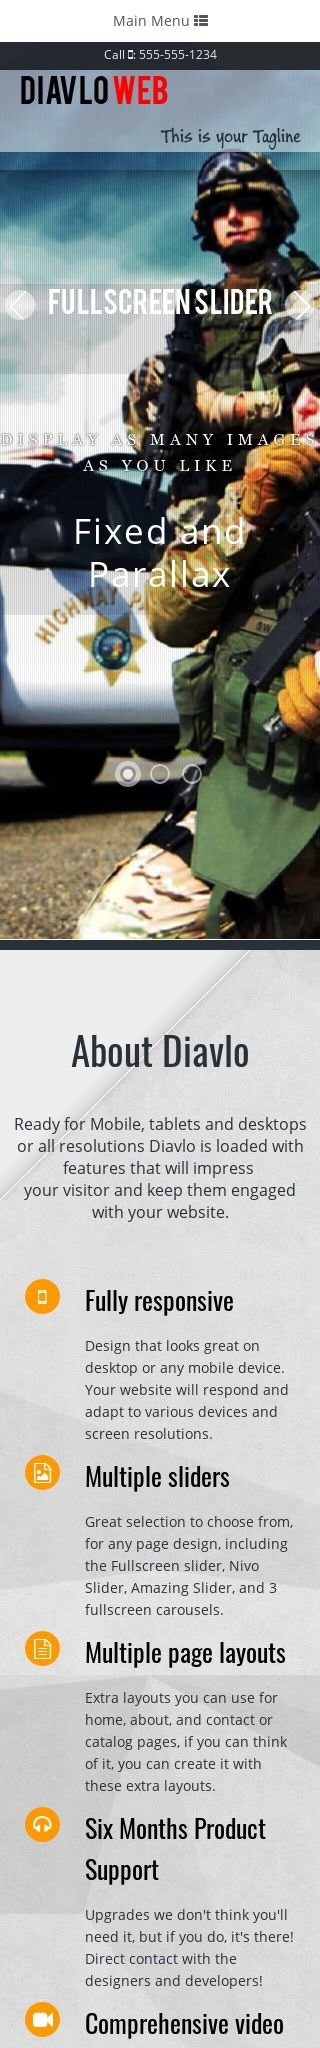 Mobile: Law-enforcement Web Template